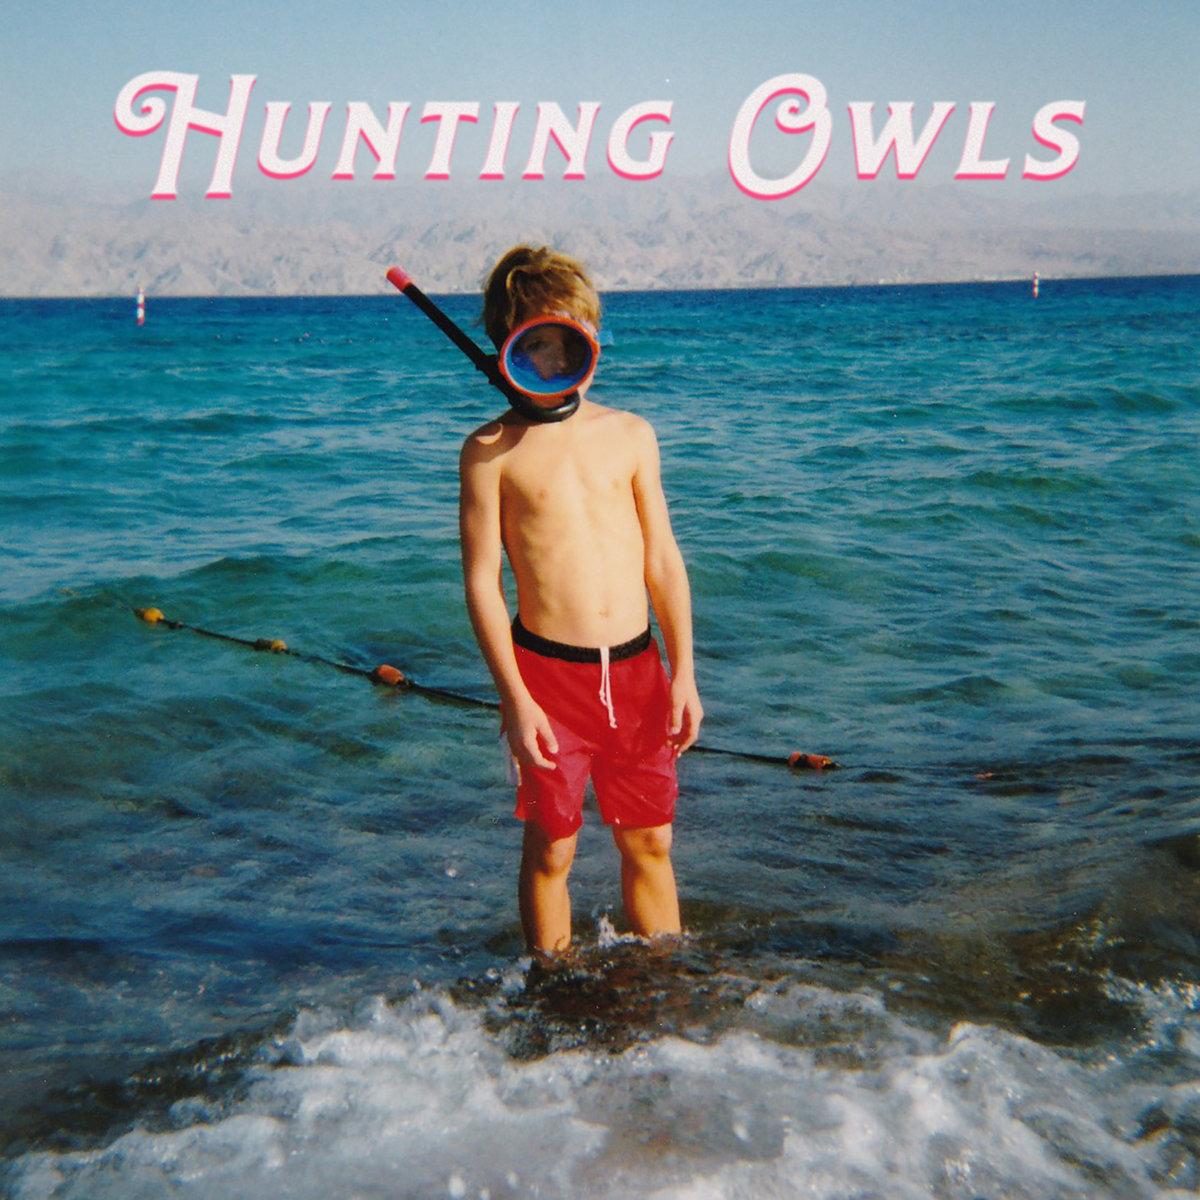 Hunting Owls